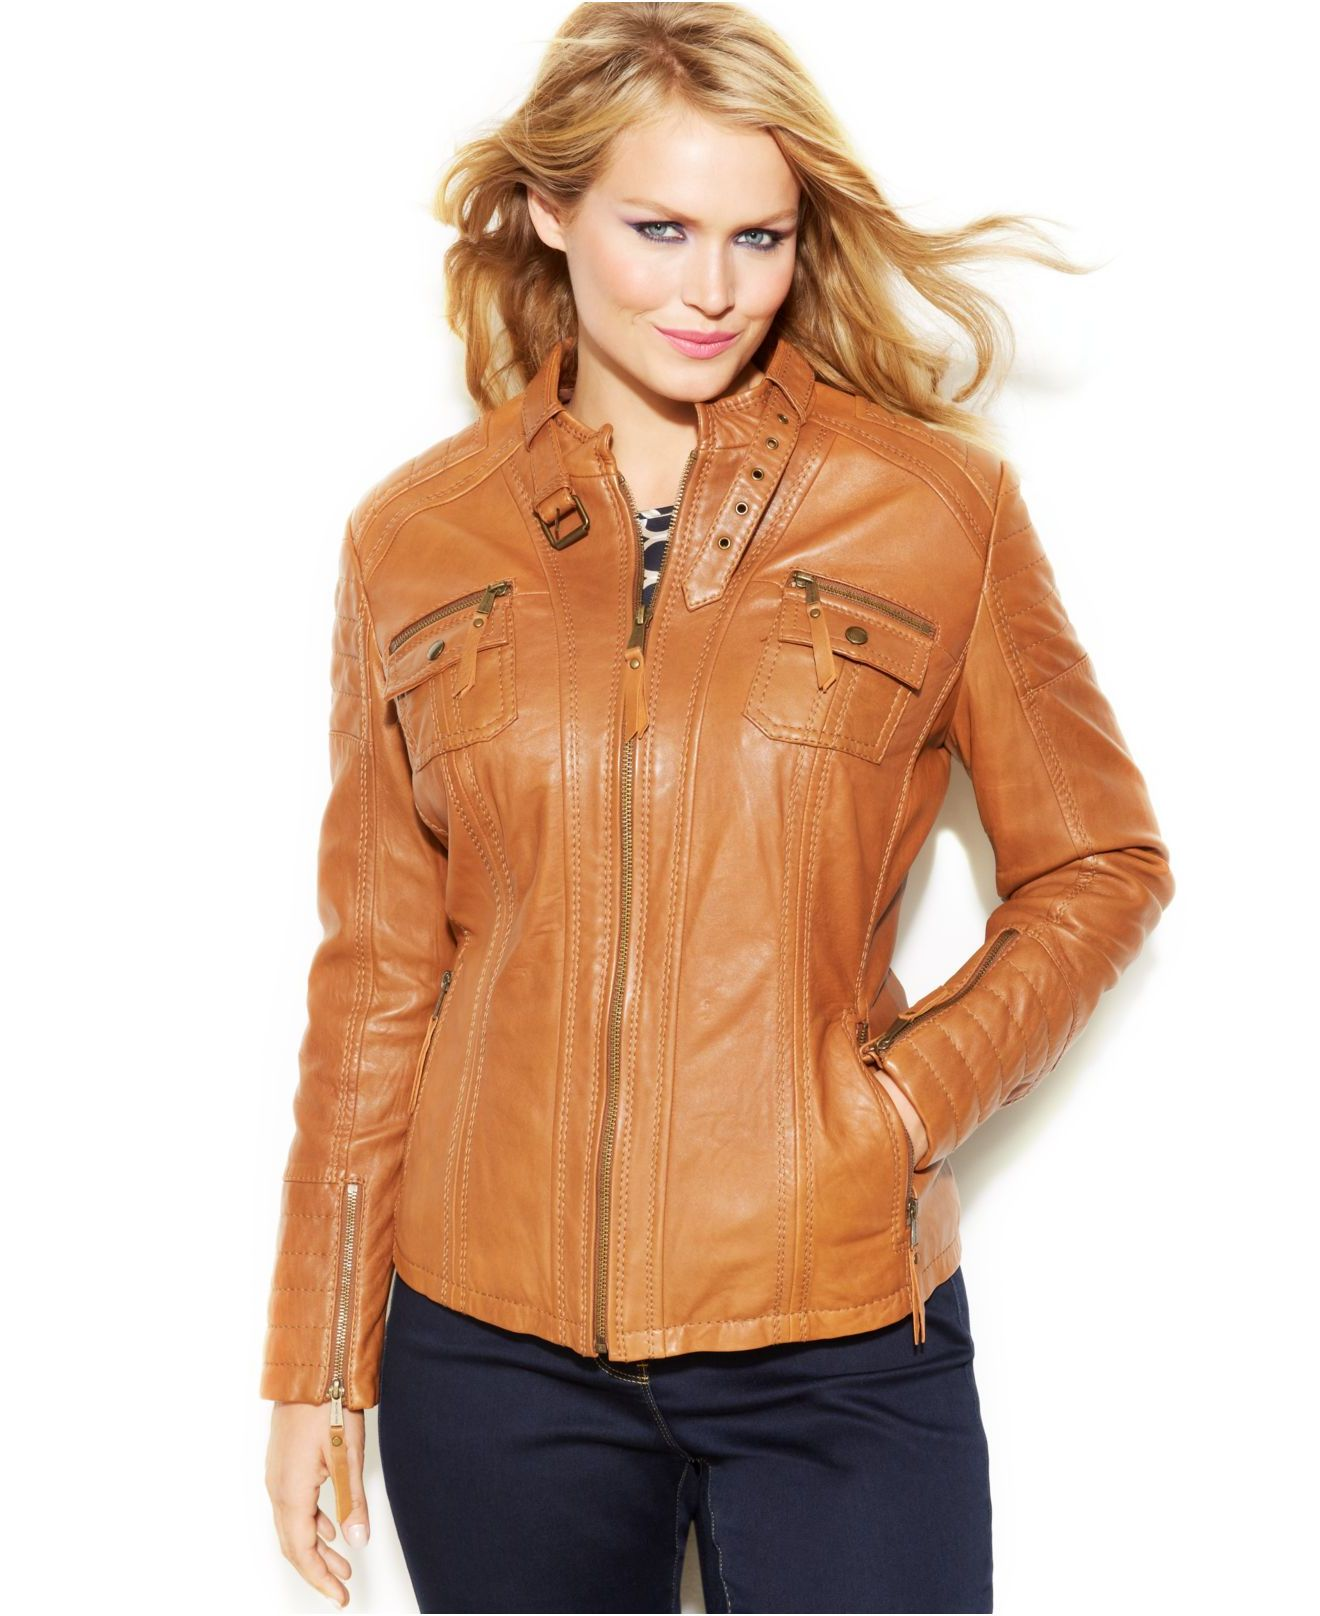 Womens Leather Motorcycle Jackets Plus Size Leather